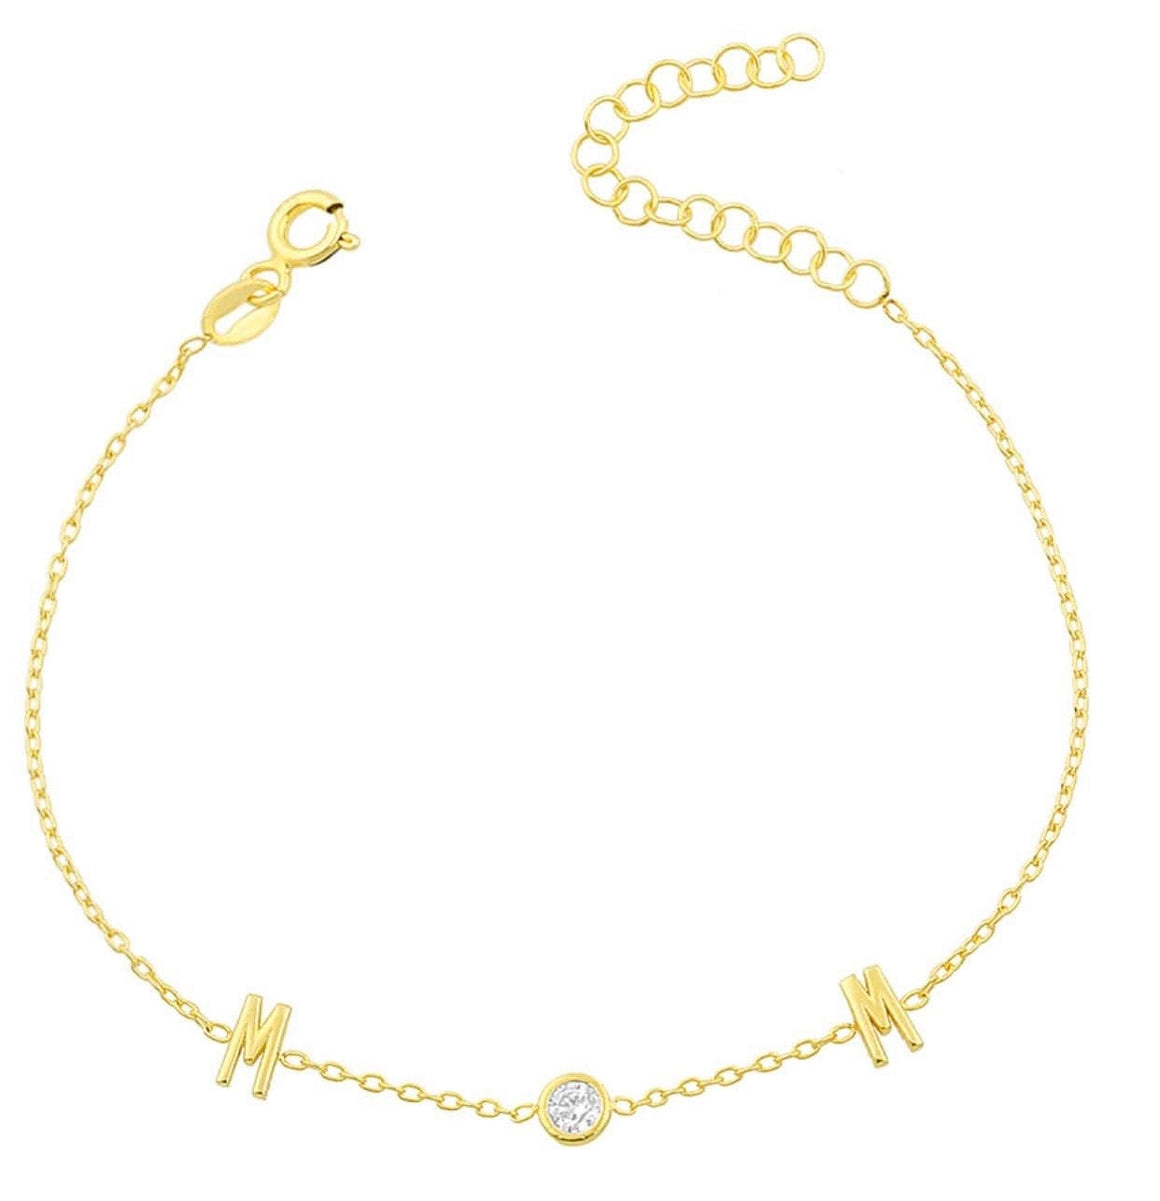 Dainty MOM bracelet with CZ center